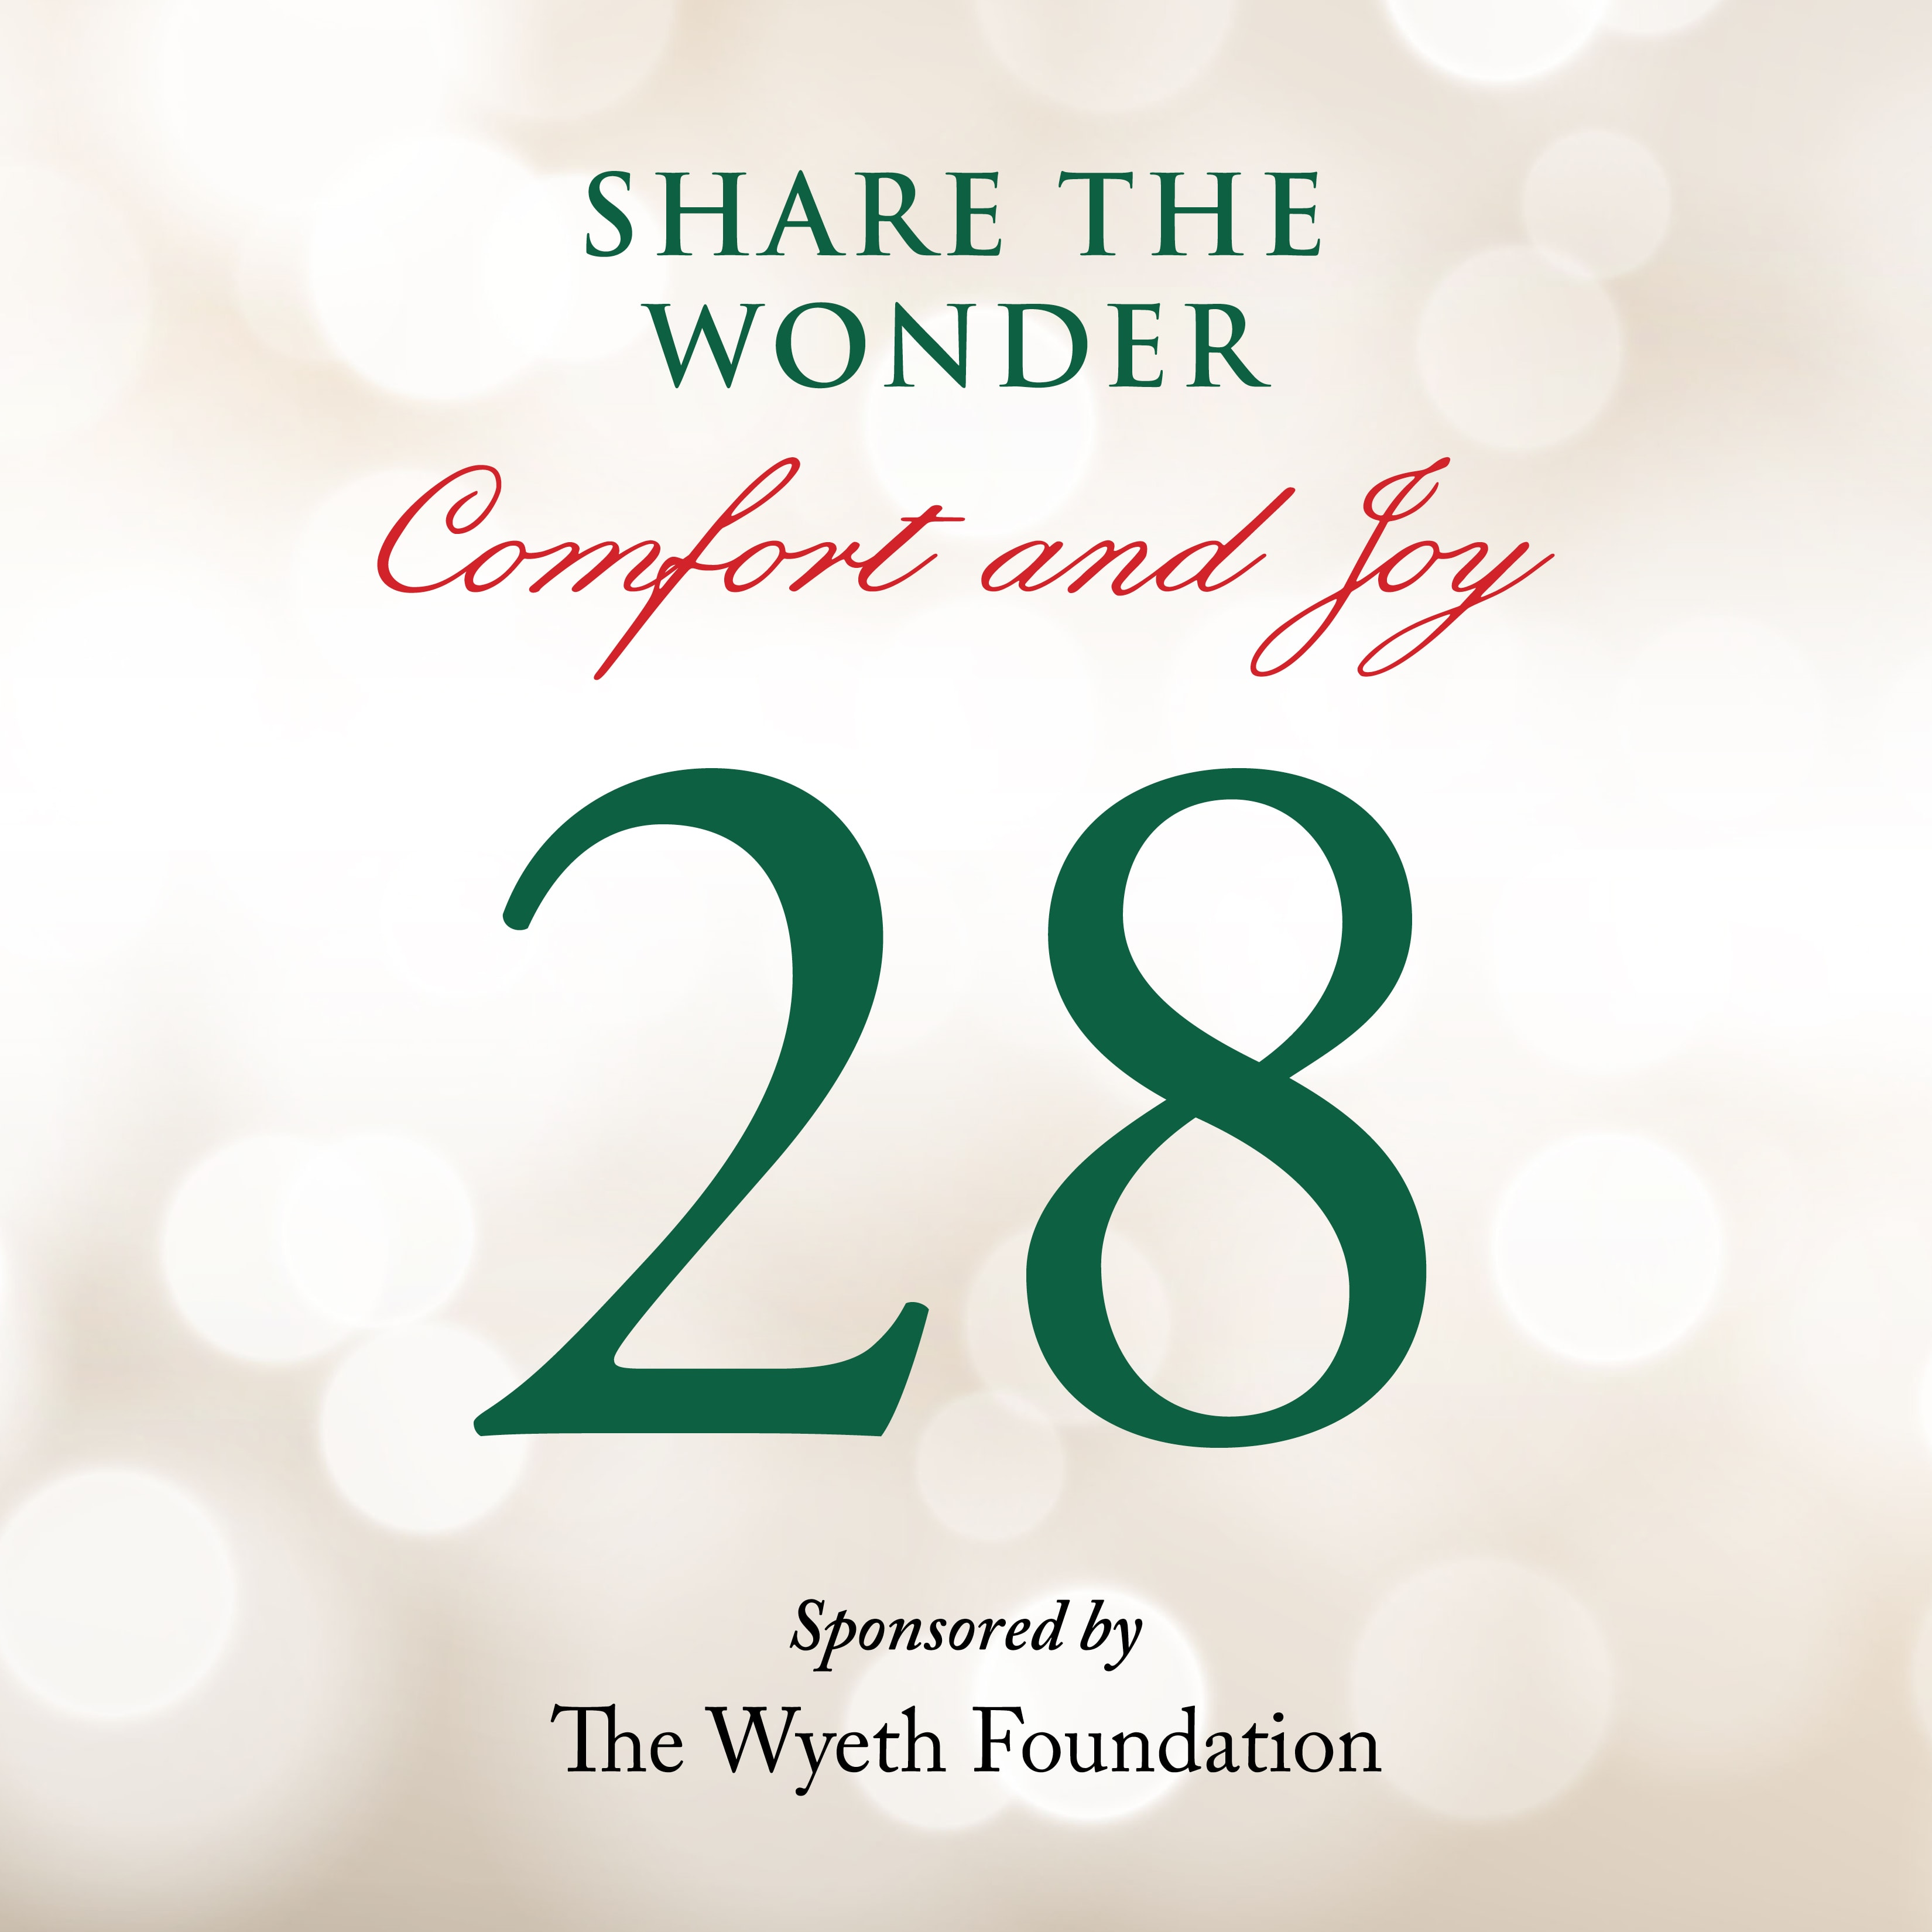 Day 28 of Share the Wonder: December 25